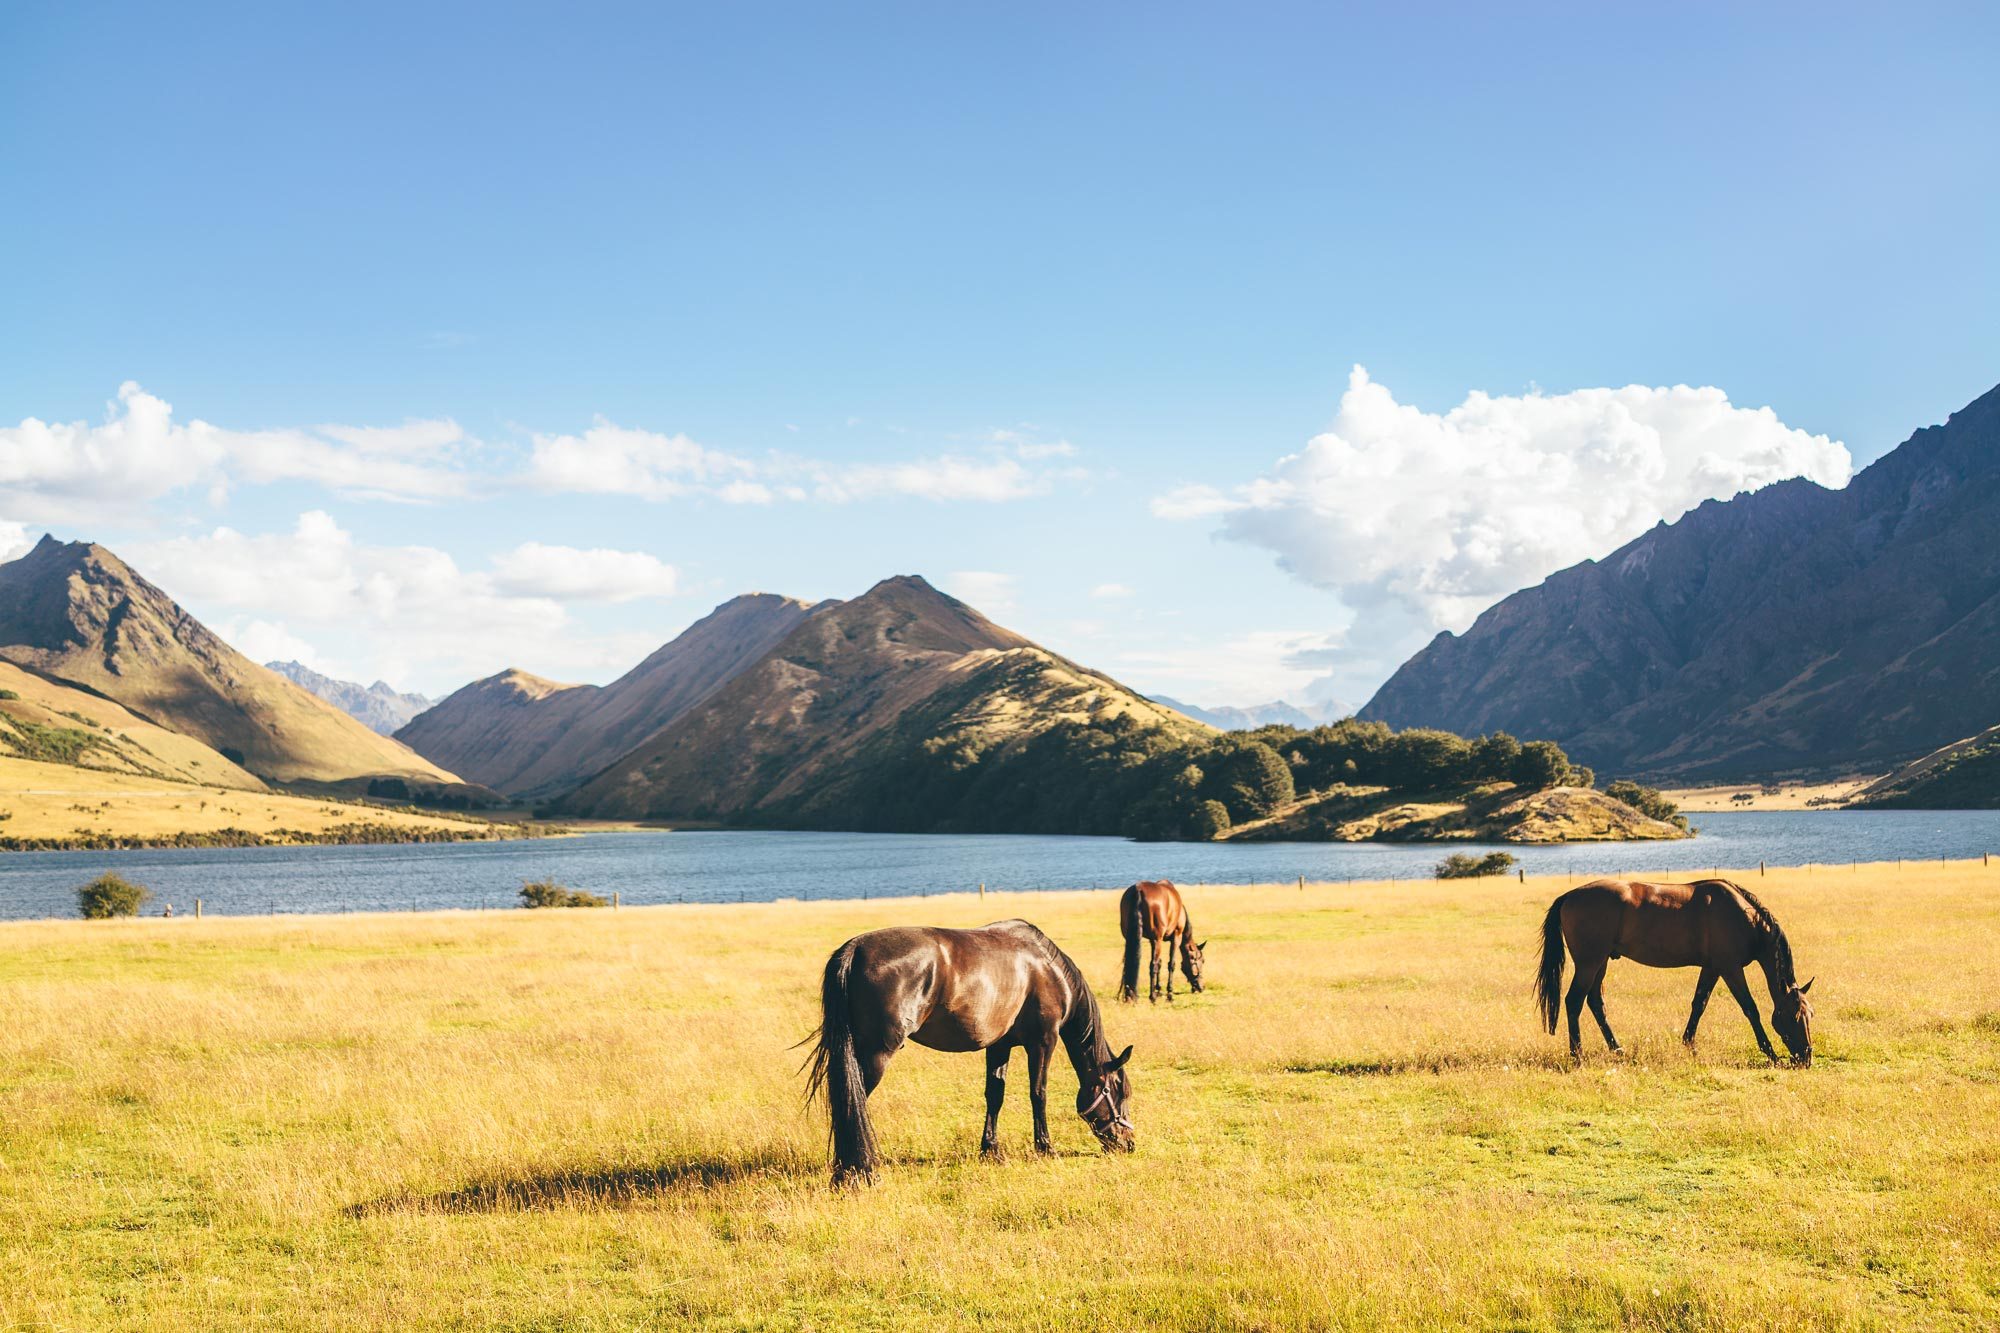 Horses eating a field next to Moke Lake in Queenstown